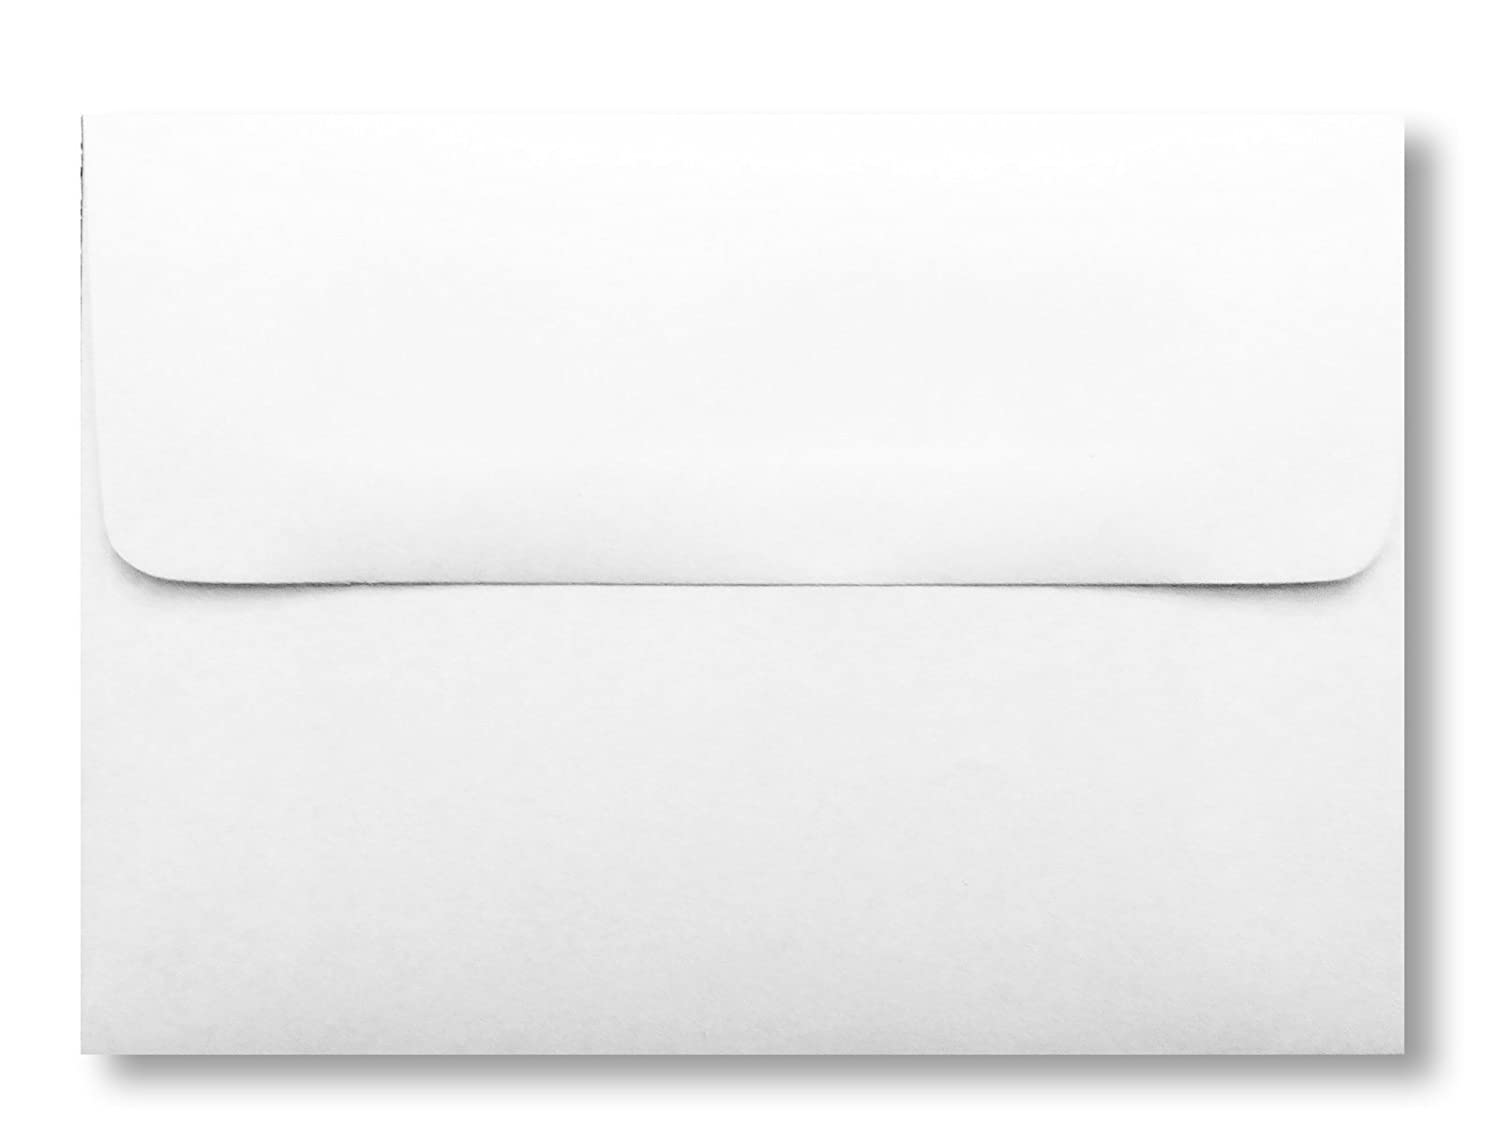 on sale 250 white envelopes 6 x 9 for 5 3 4 x 8 3 4 greeting